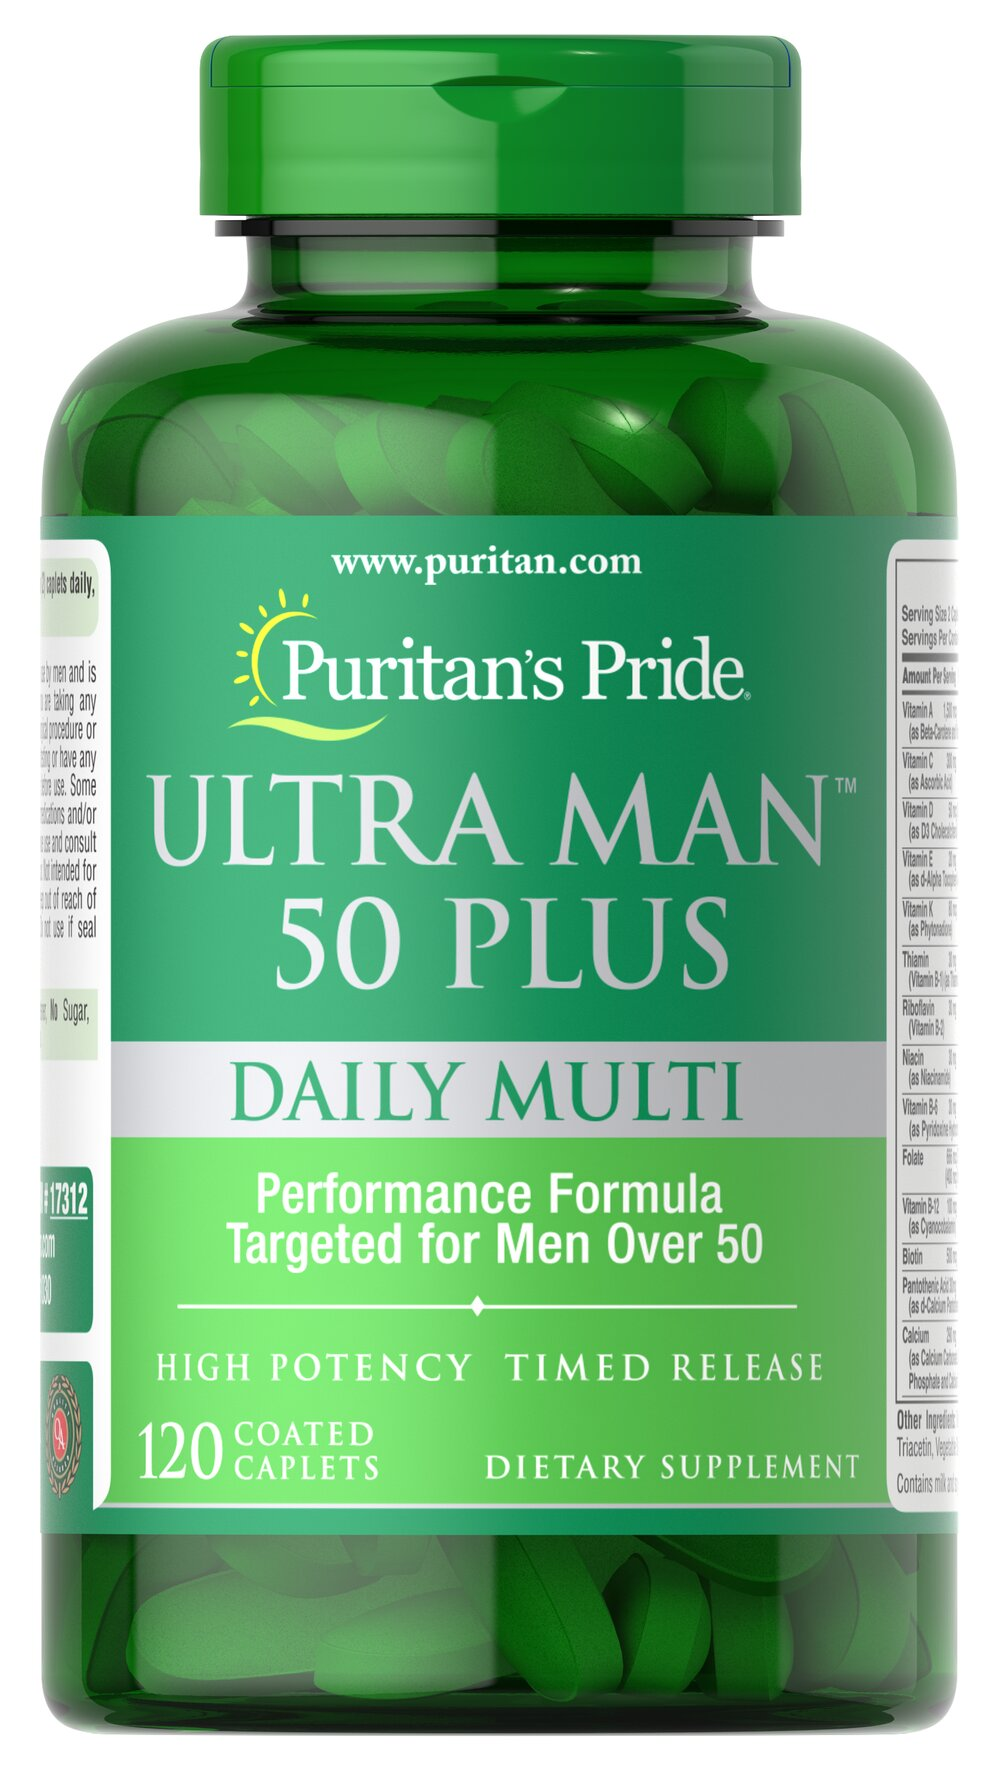 Ultra Vita Man™ 50 Plus • High performance multi with over 50 important nutrients for men's health**<br />• Created especially for men over 50<br />• Just two coated caplets a day<br />• Includes Saw Palmetto and Lycopene for healthy prostate function**<br />• Helps improve memory, especially occasional mild memory problems associated with aging**<br />• Features Zinc, an important mineral that contributes to normal semen production and sexual health** 120 Caplets